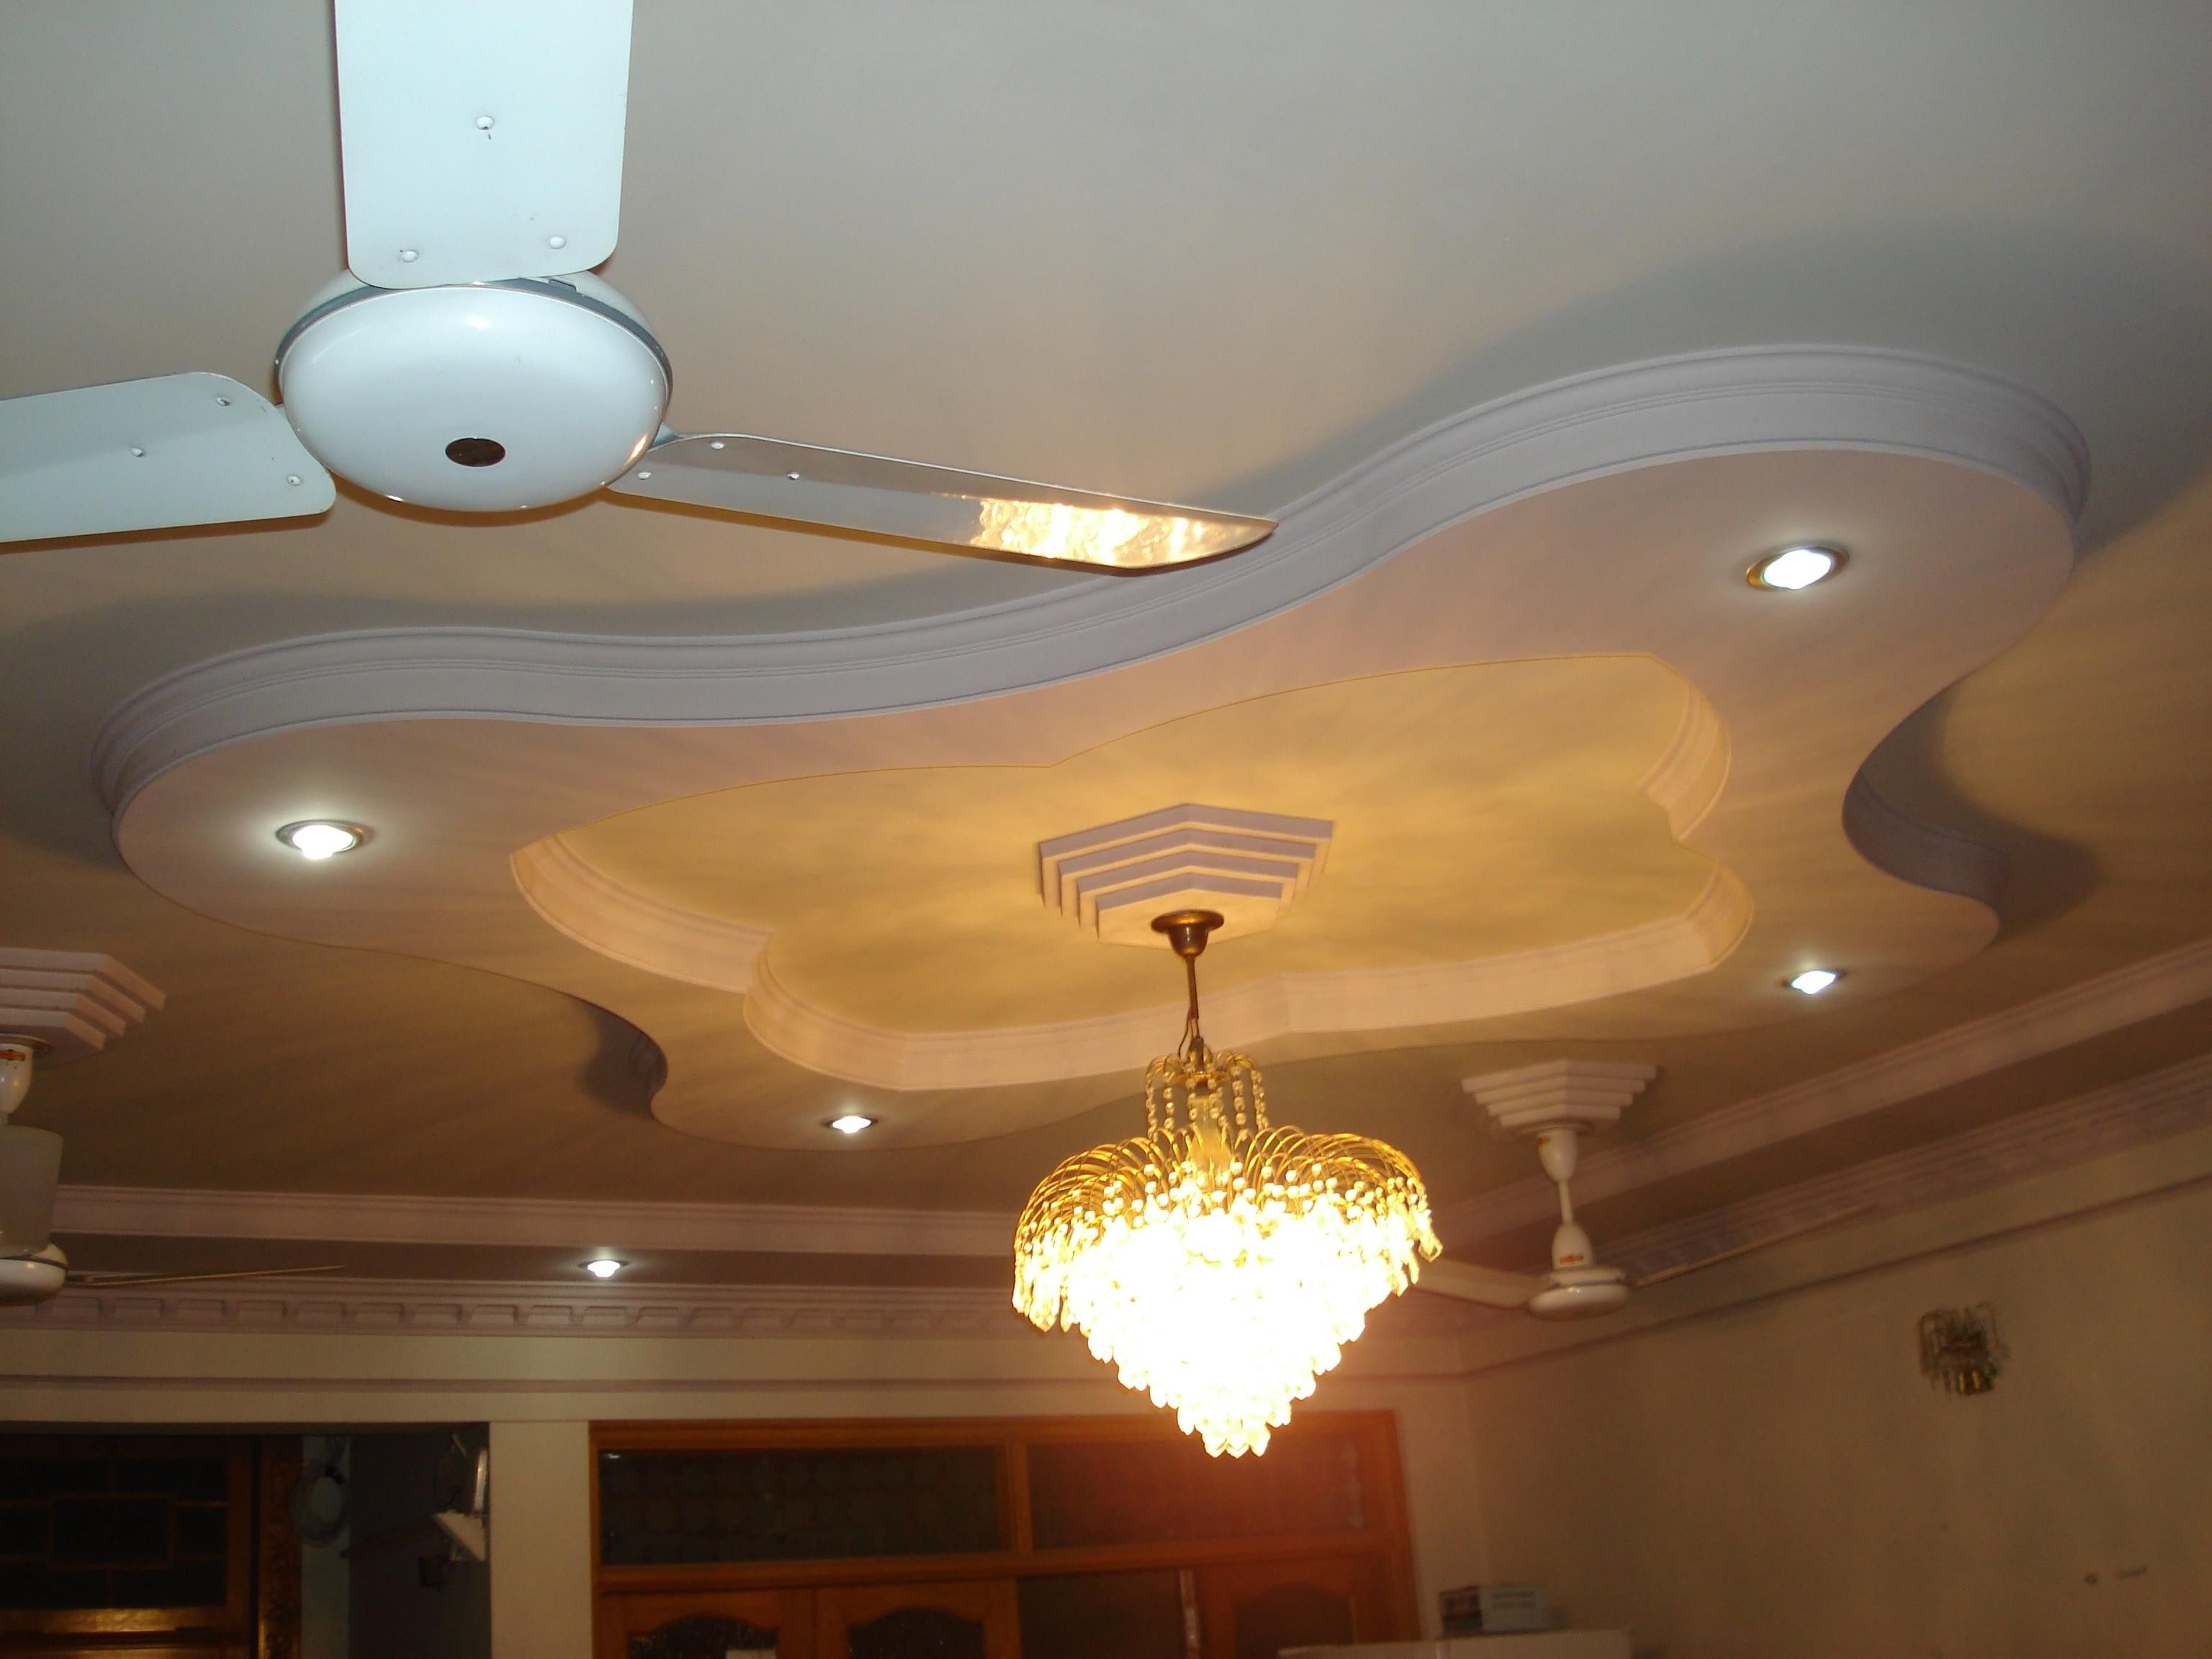 Simple False Ceiling Design For Hall With 2 Fans ...